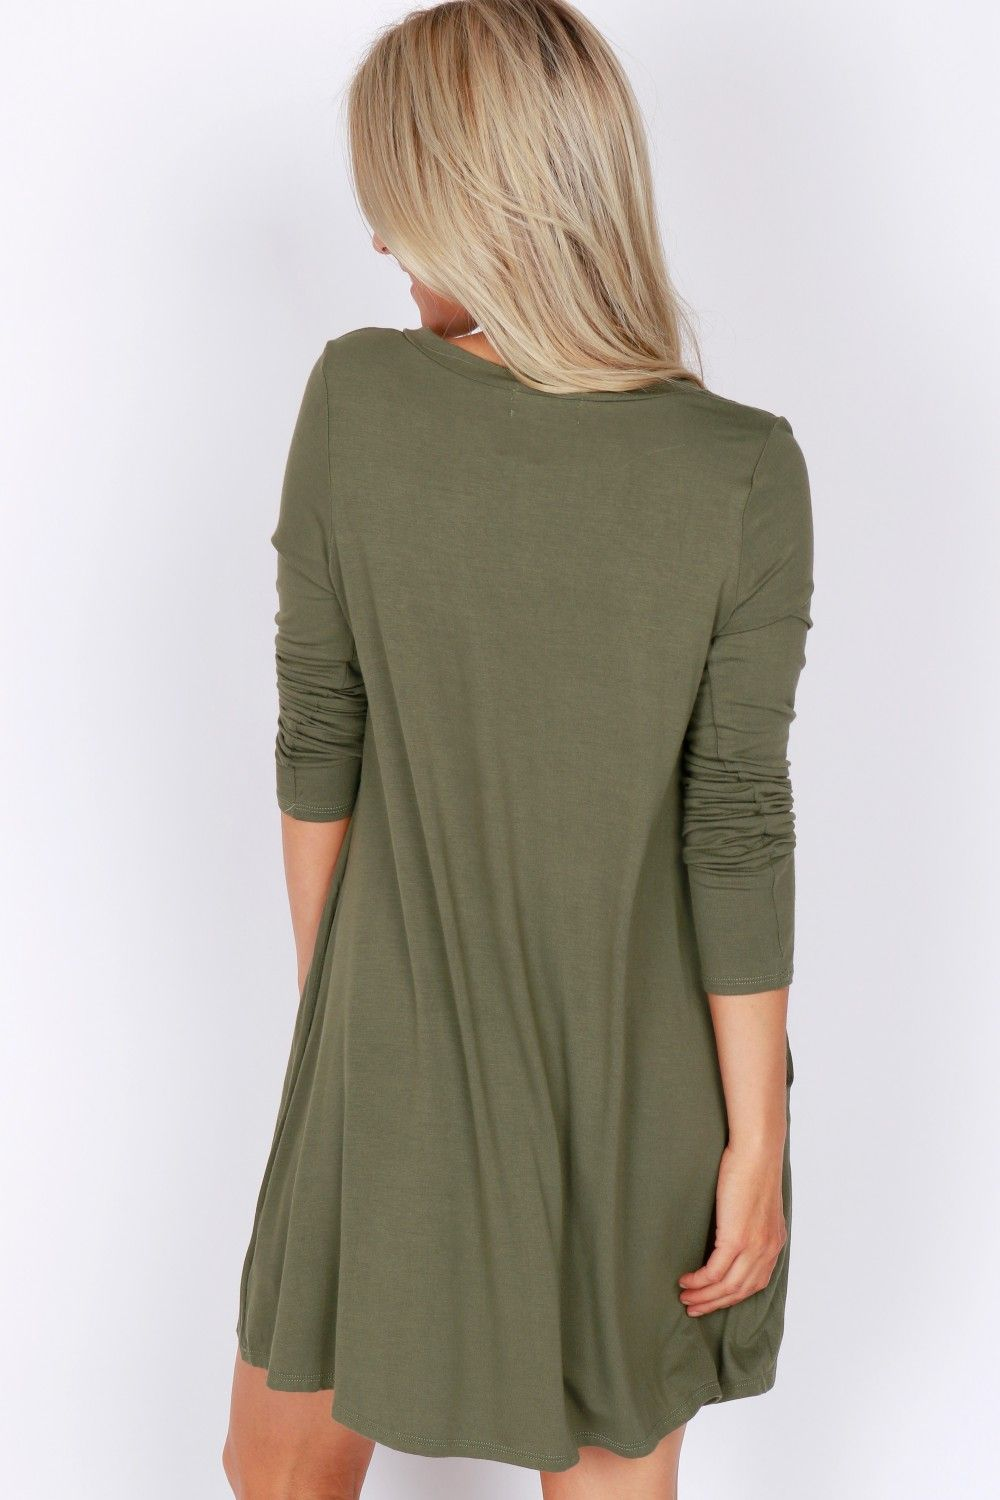 Long sleeve vneck dress olive self expression through style